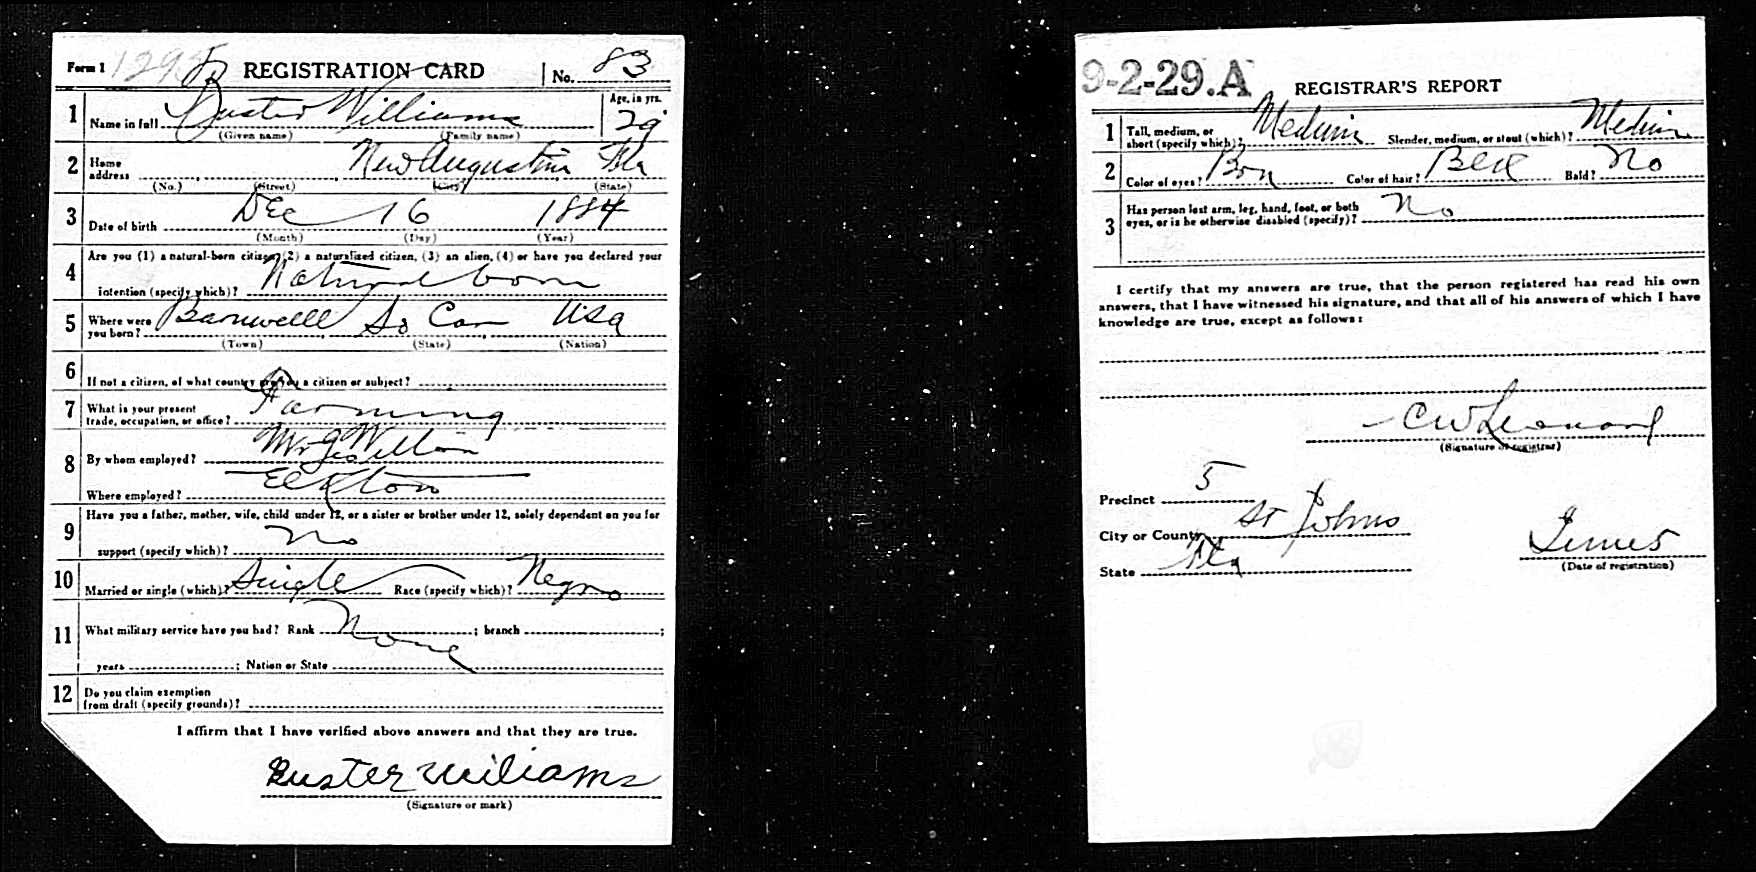 Buster Williams Registration Card